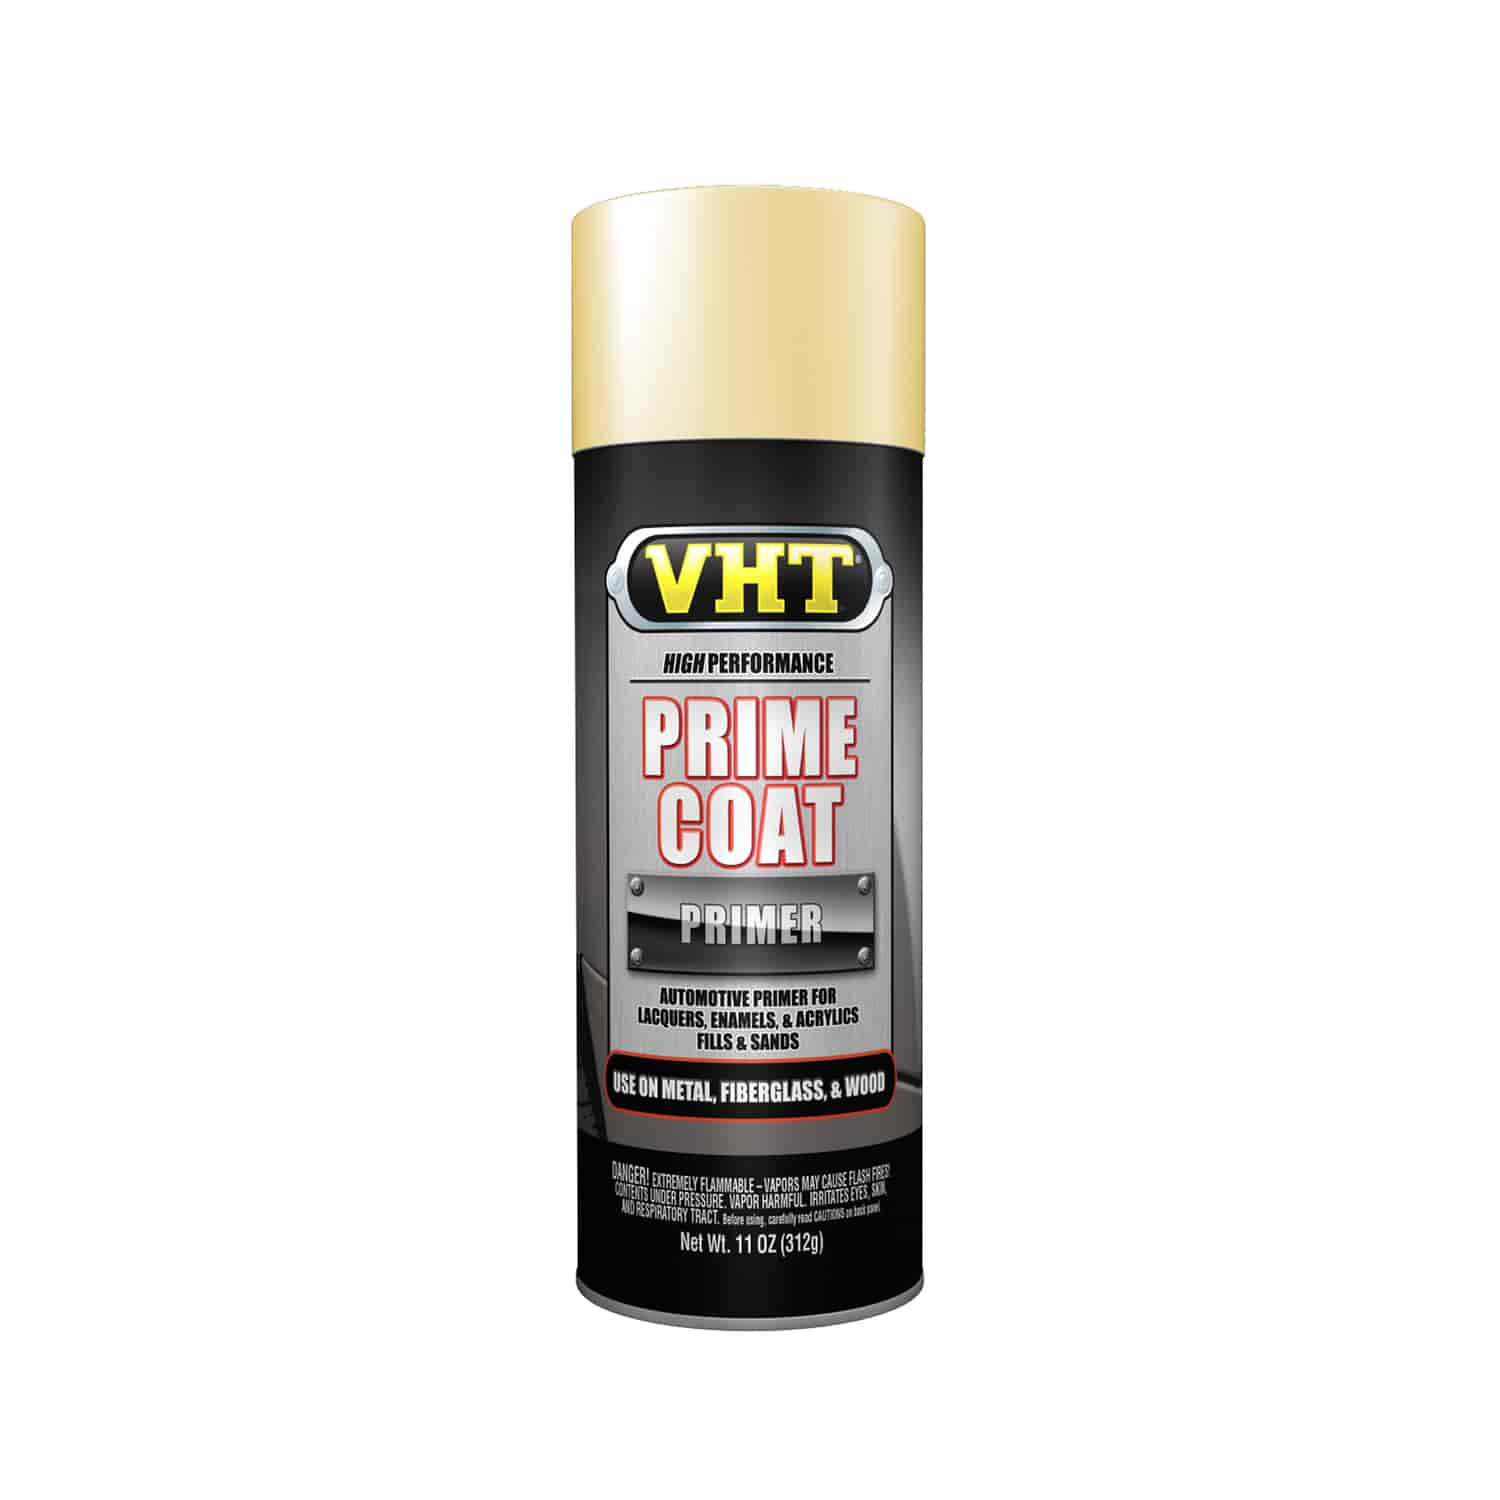 PJ1 SP306 - VHT Spray Primer